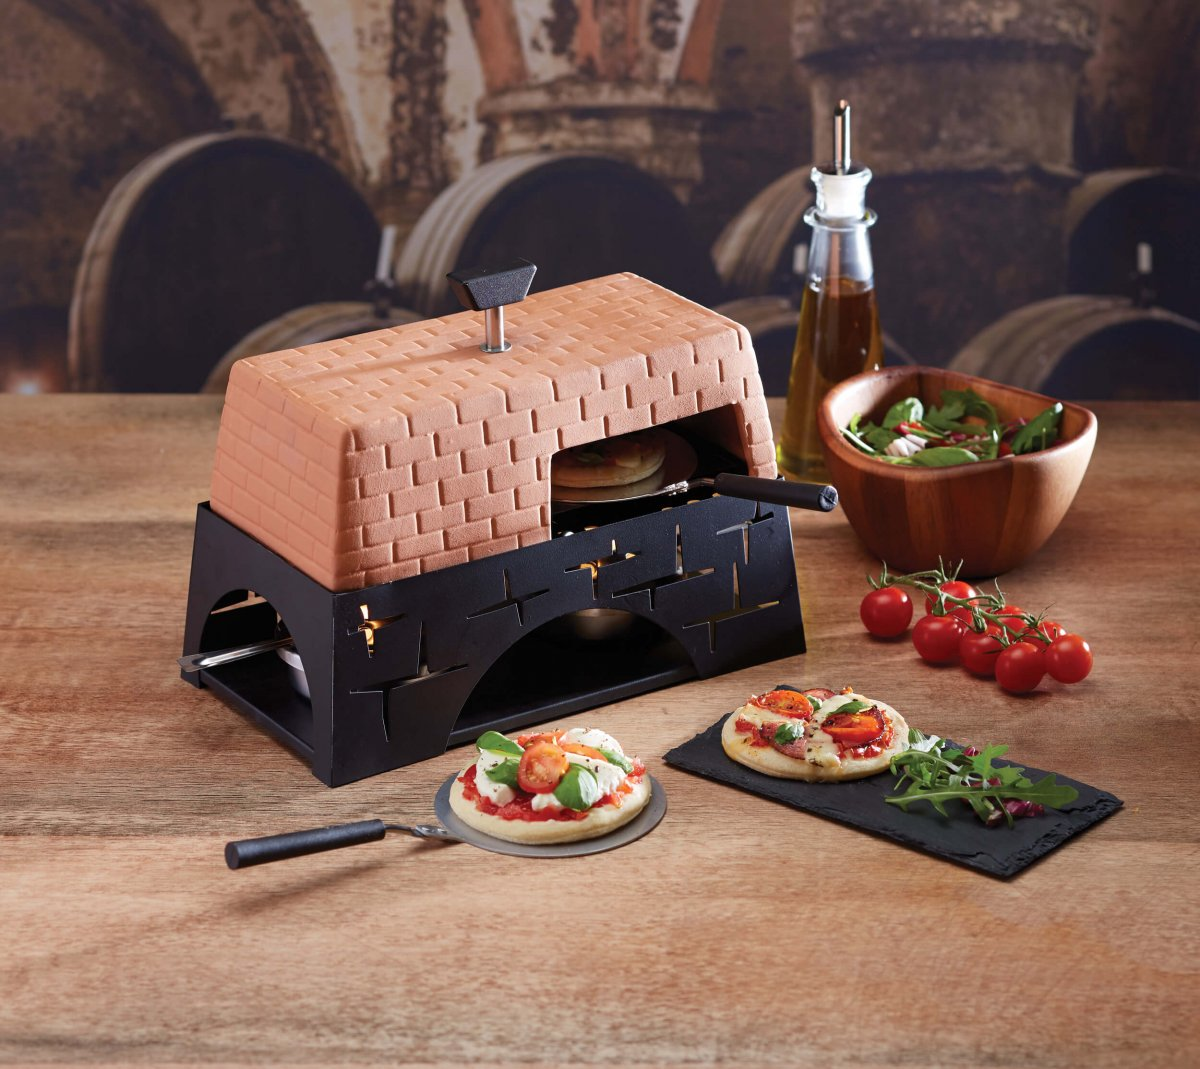 Top 20: Christmas Gift Ideas for the Foodie